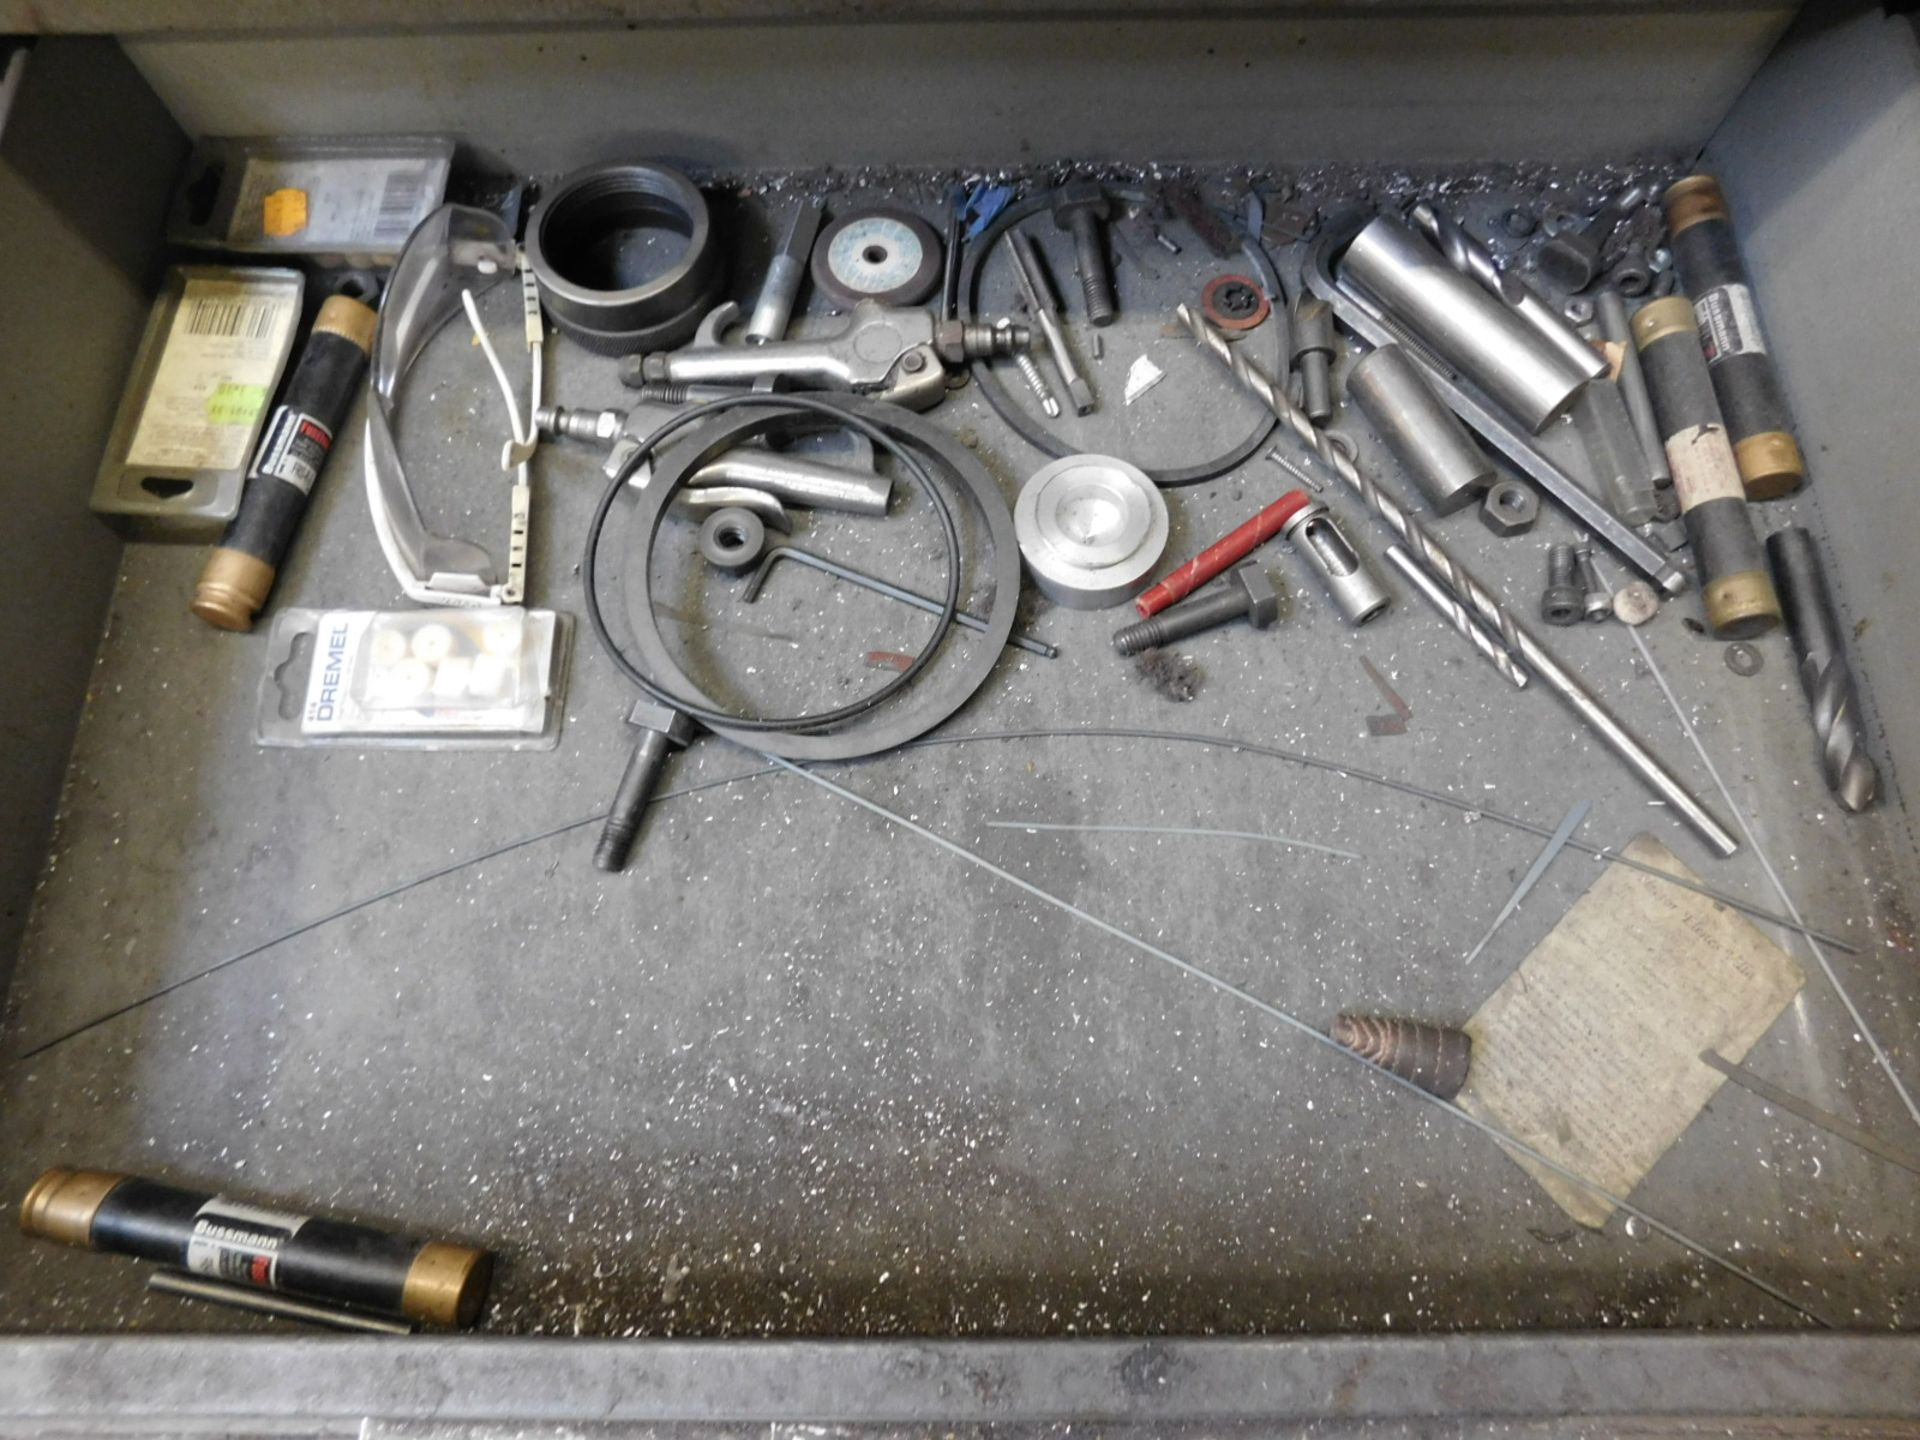 KENNEDY 5-DRAWER TOOL STORAGE CABINET, W/ CONTENTS OF MISC ABRASIVES, ETC. - Image 4 of 4